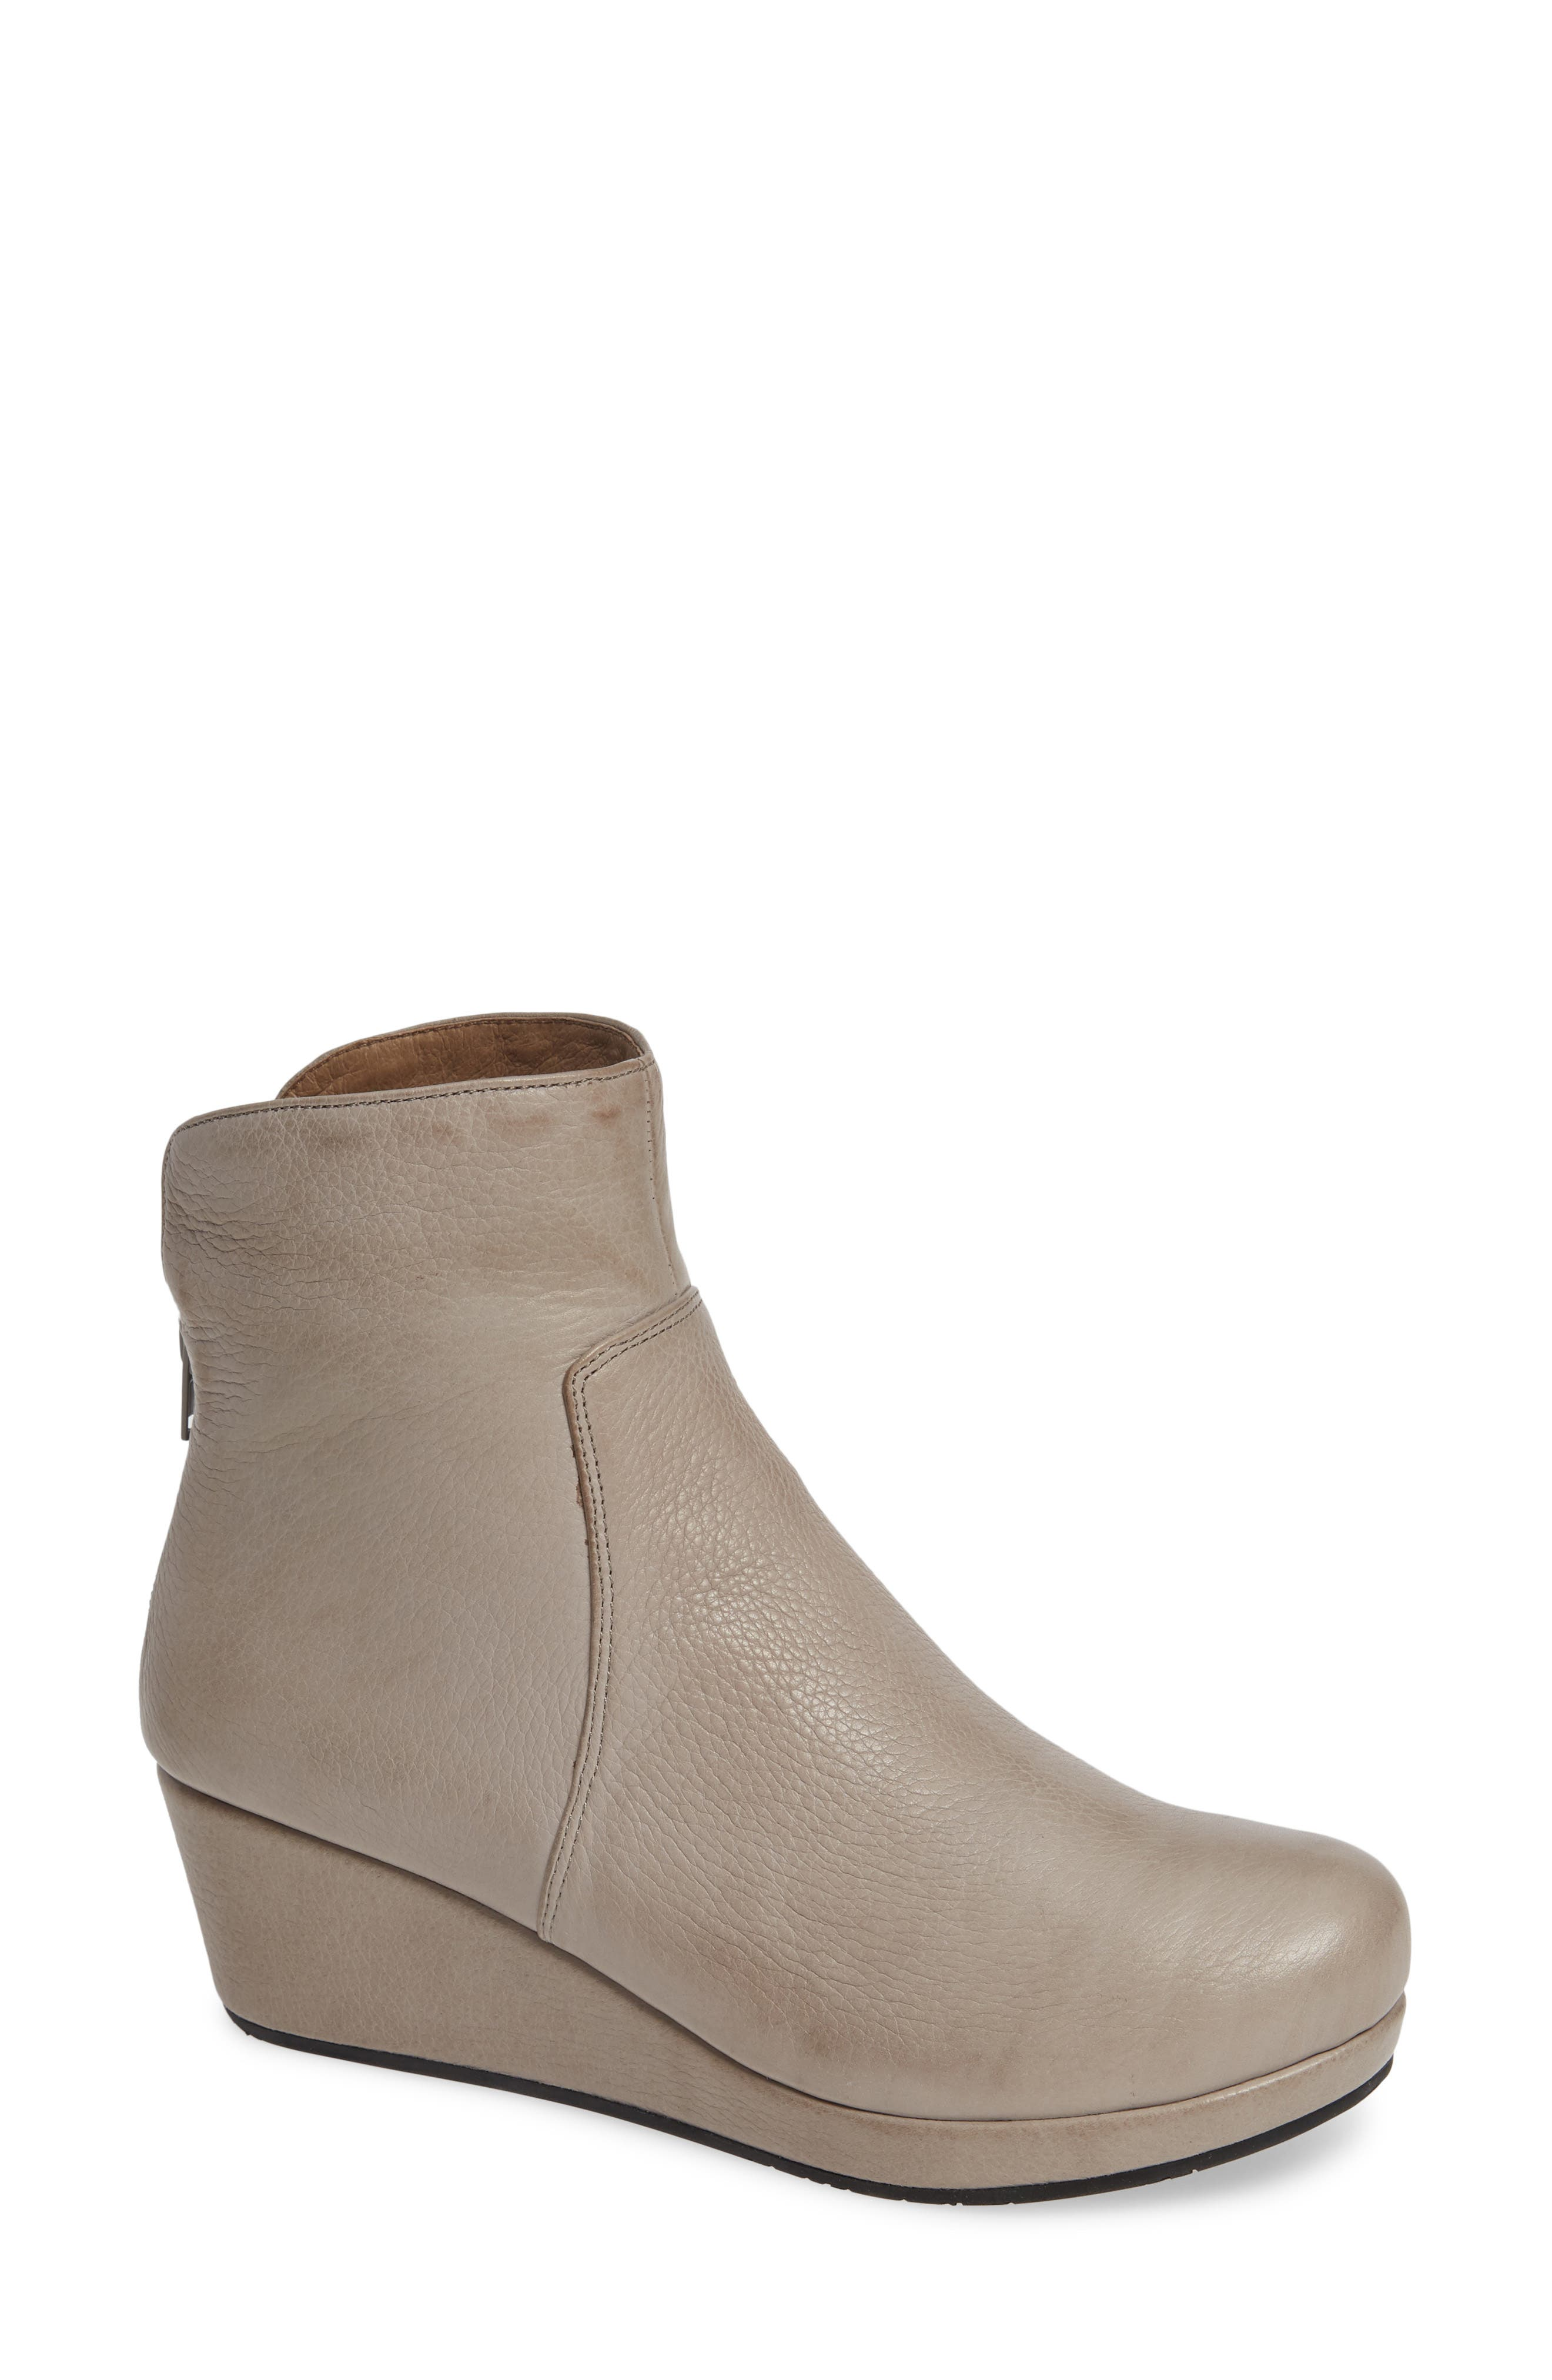 Yarden Wedge Bootie,                             Main thumbnail 1, color,                             GREY LEATHER